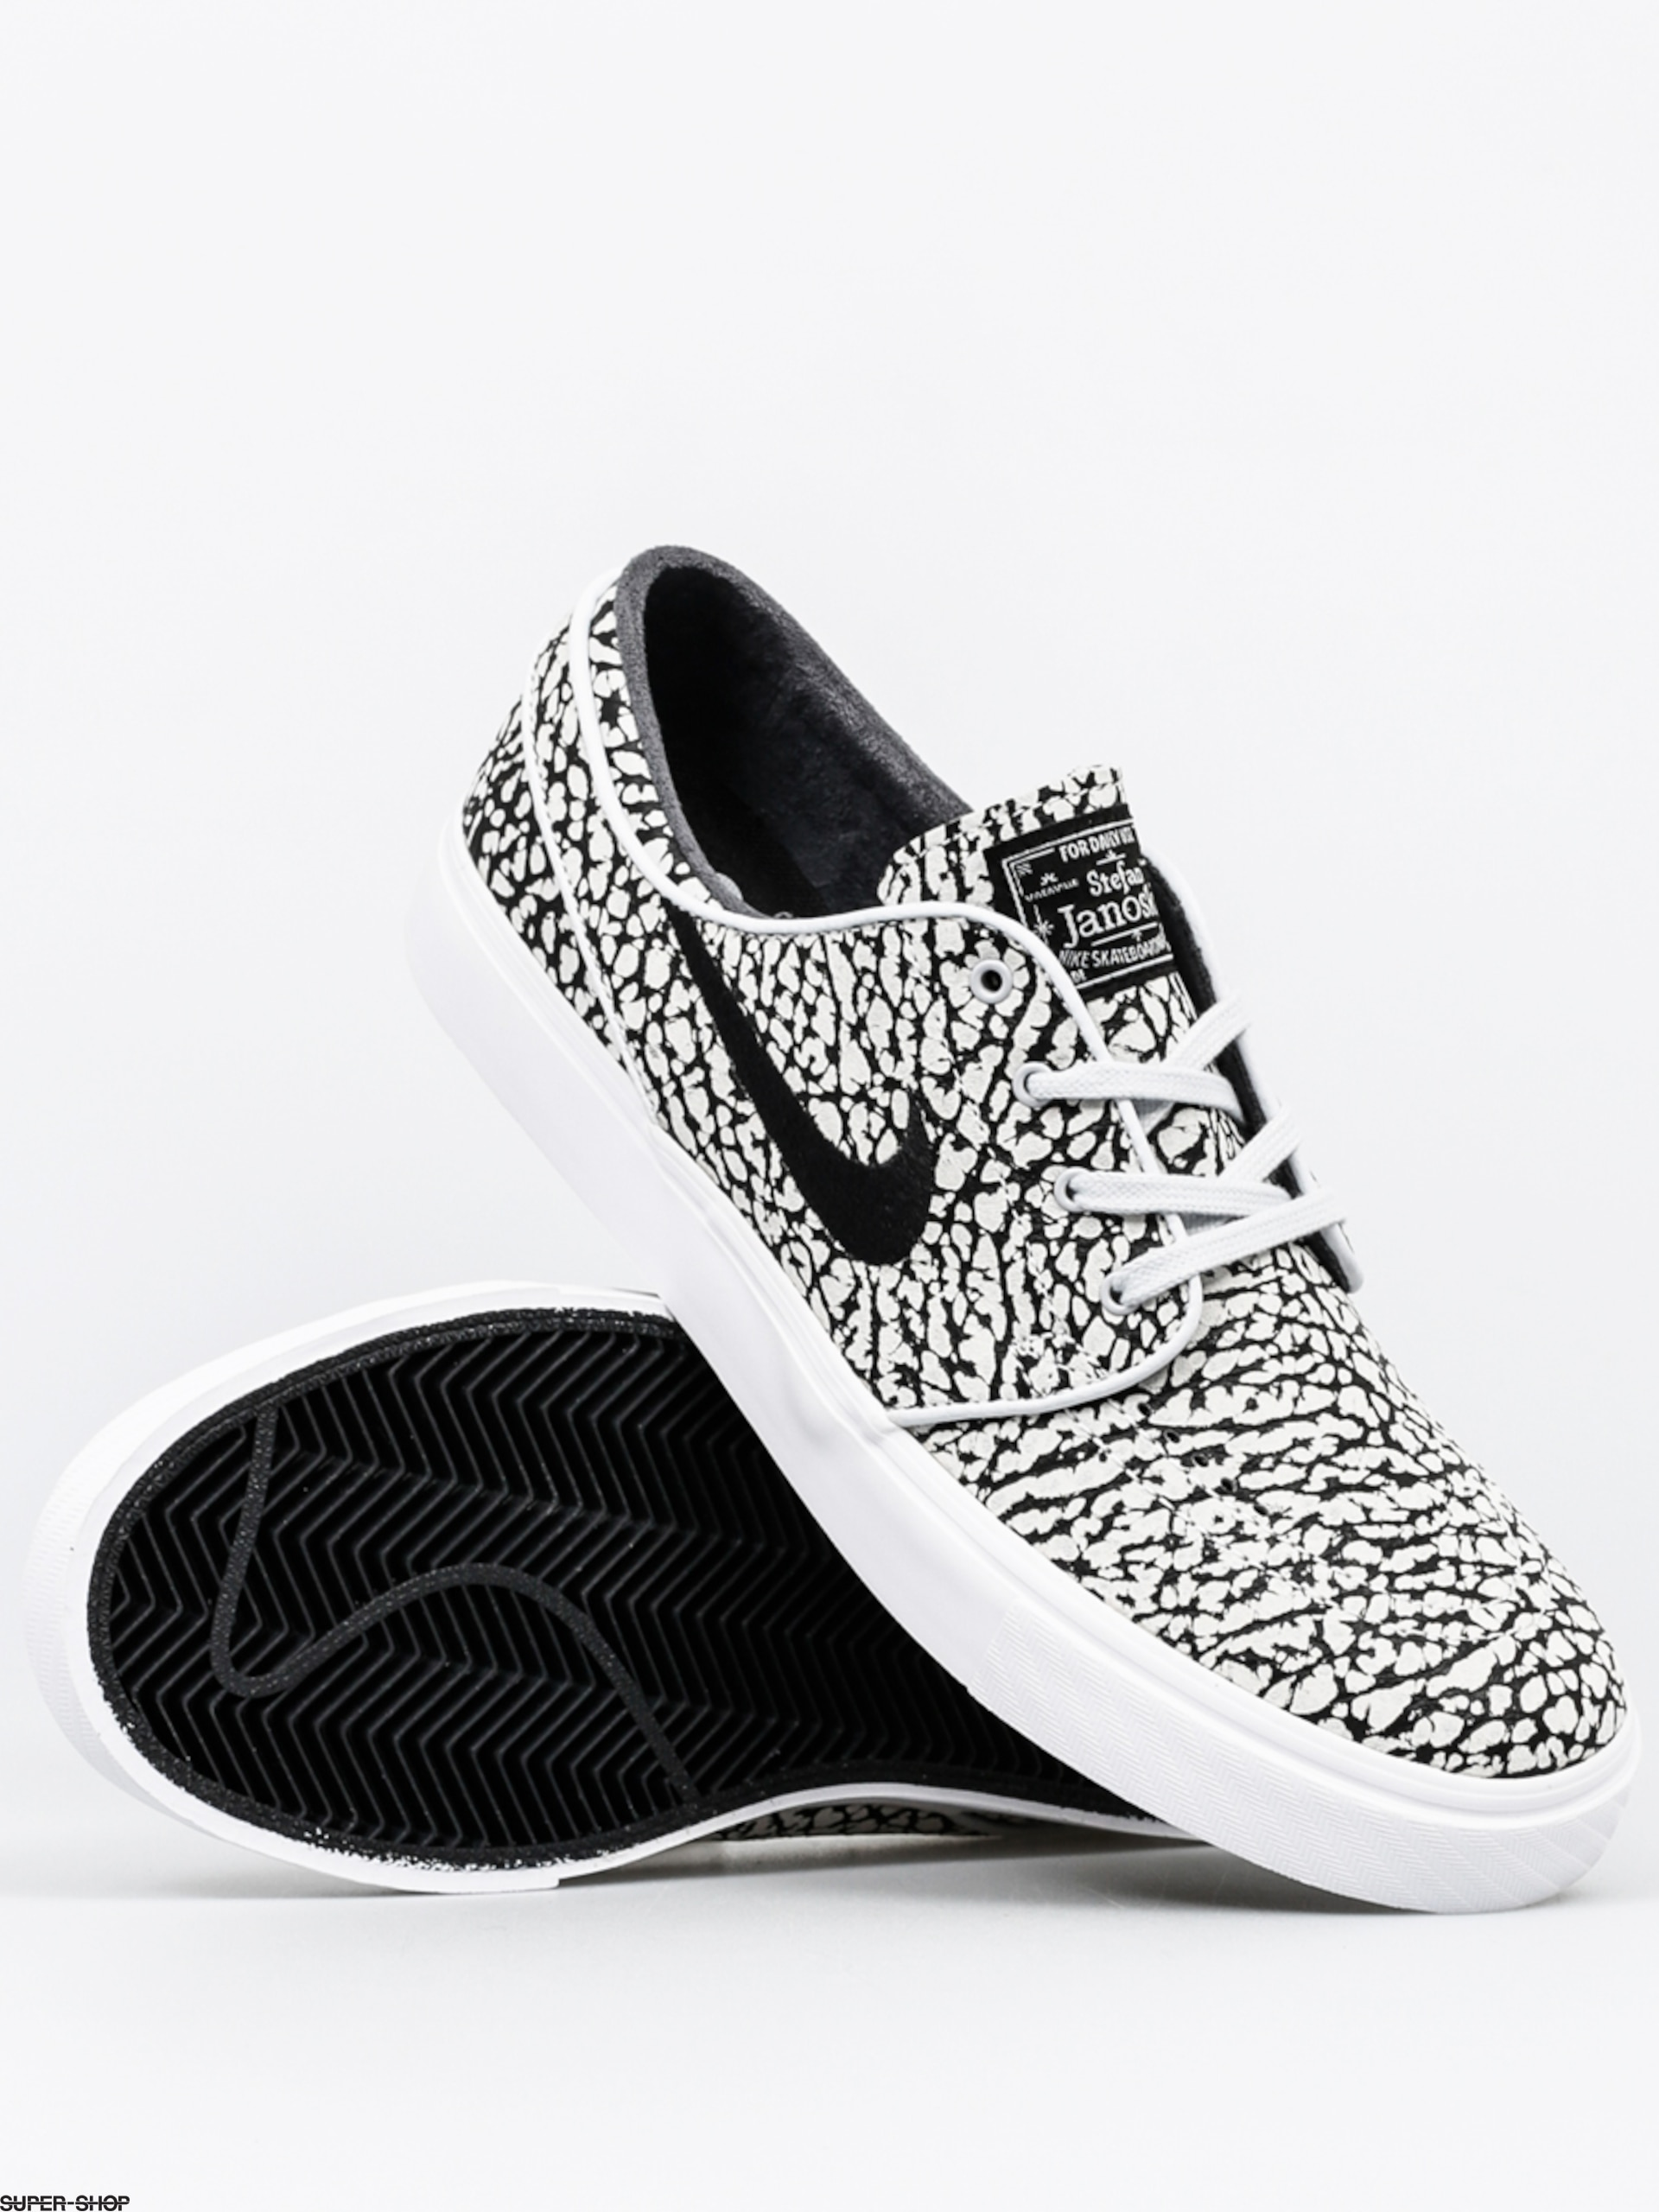 827eaec6395 Nike SB Shoes Zoom Stefan Janoski Elite (pure platinum black white)